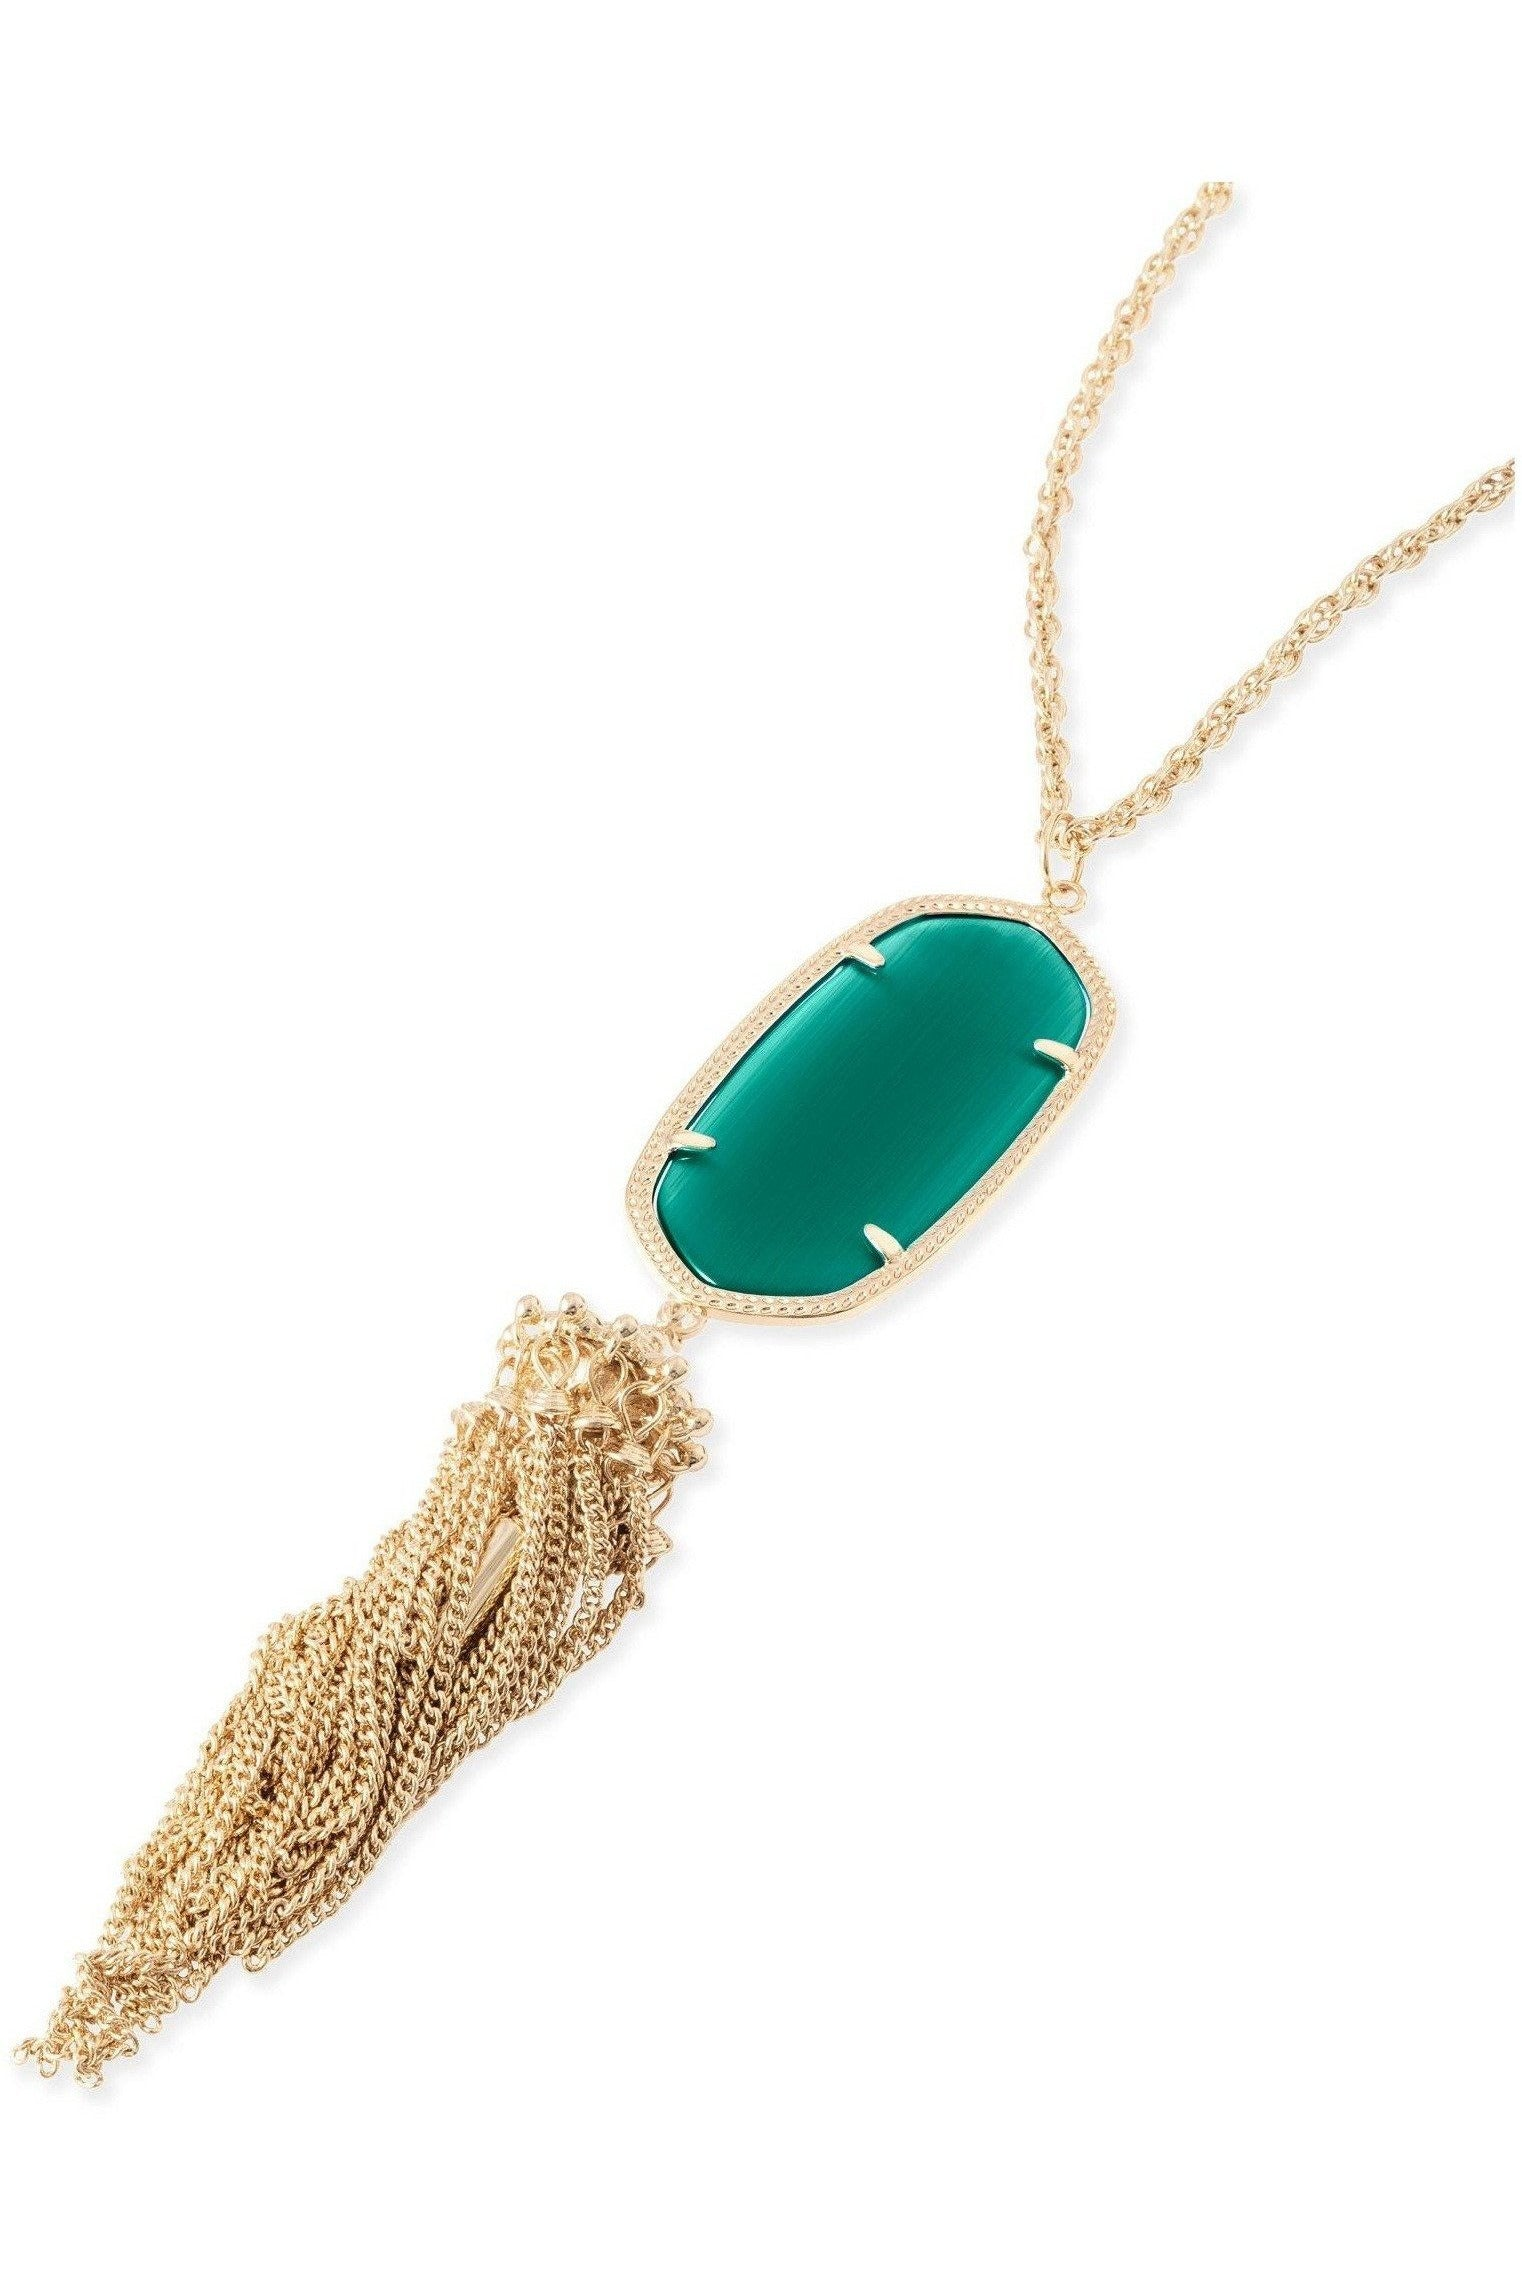 Kendra Scott: Rayne Necklace In Emerald Cat's Eye